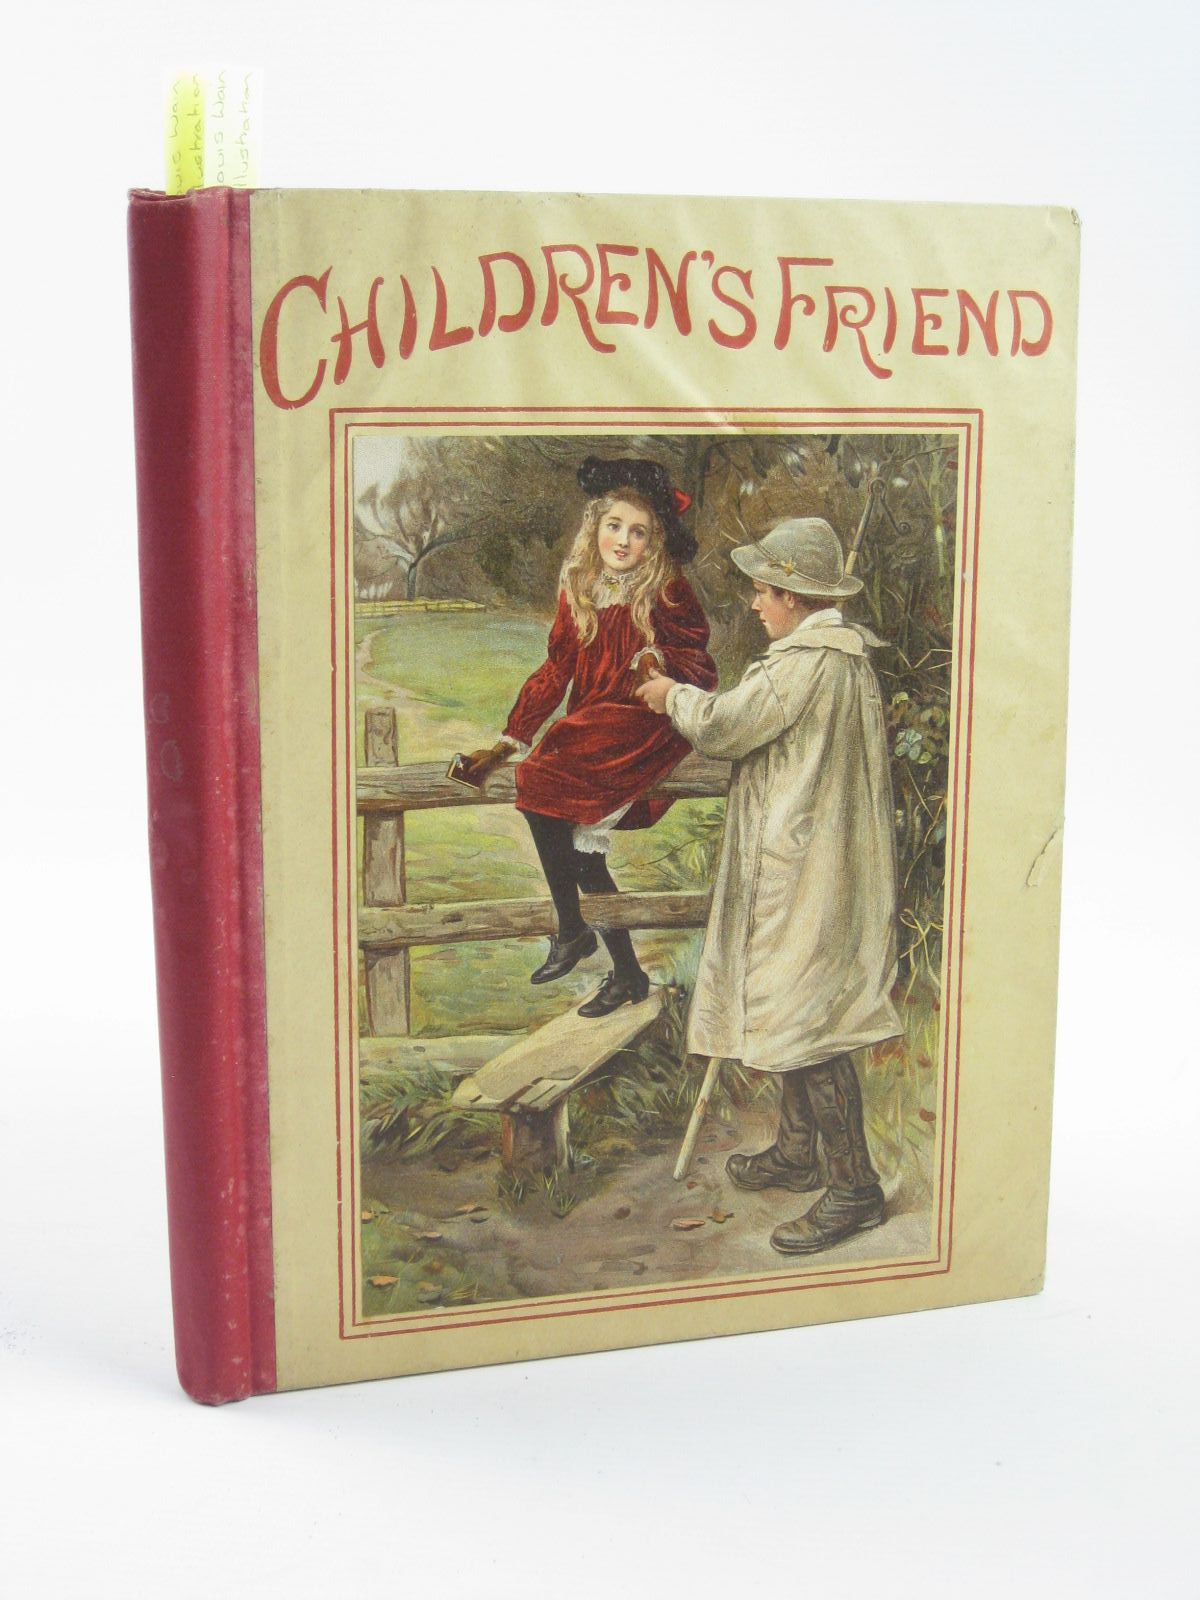 Photo of THE CHILDREN'S FRIEND VOLUME XXXVI - 1896 written by Potter, F. Scarlett Waterworth, E.M. et al,  illustrated by Groome, W.H.C. Wain, Louis Rainey, W. et al.,  published by S.W. Partridge & Co. (STOCK CODE: 1501399)  for sale by Stella & Rose's Books